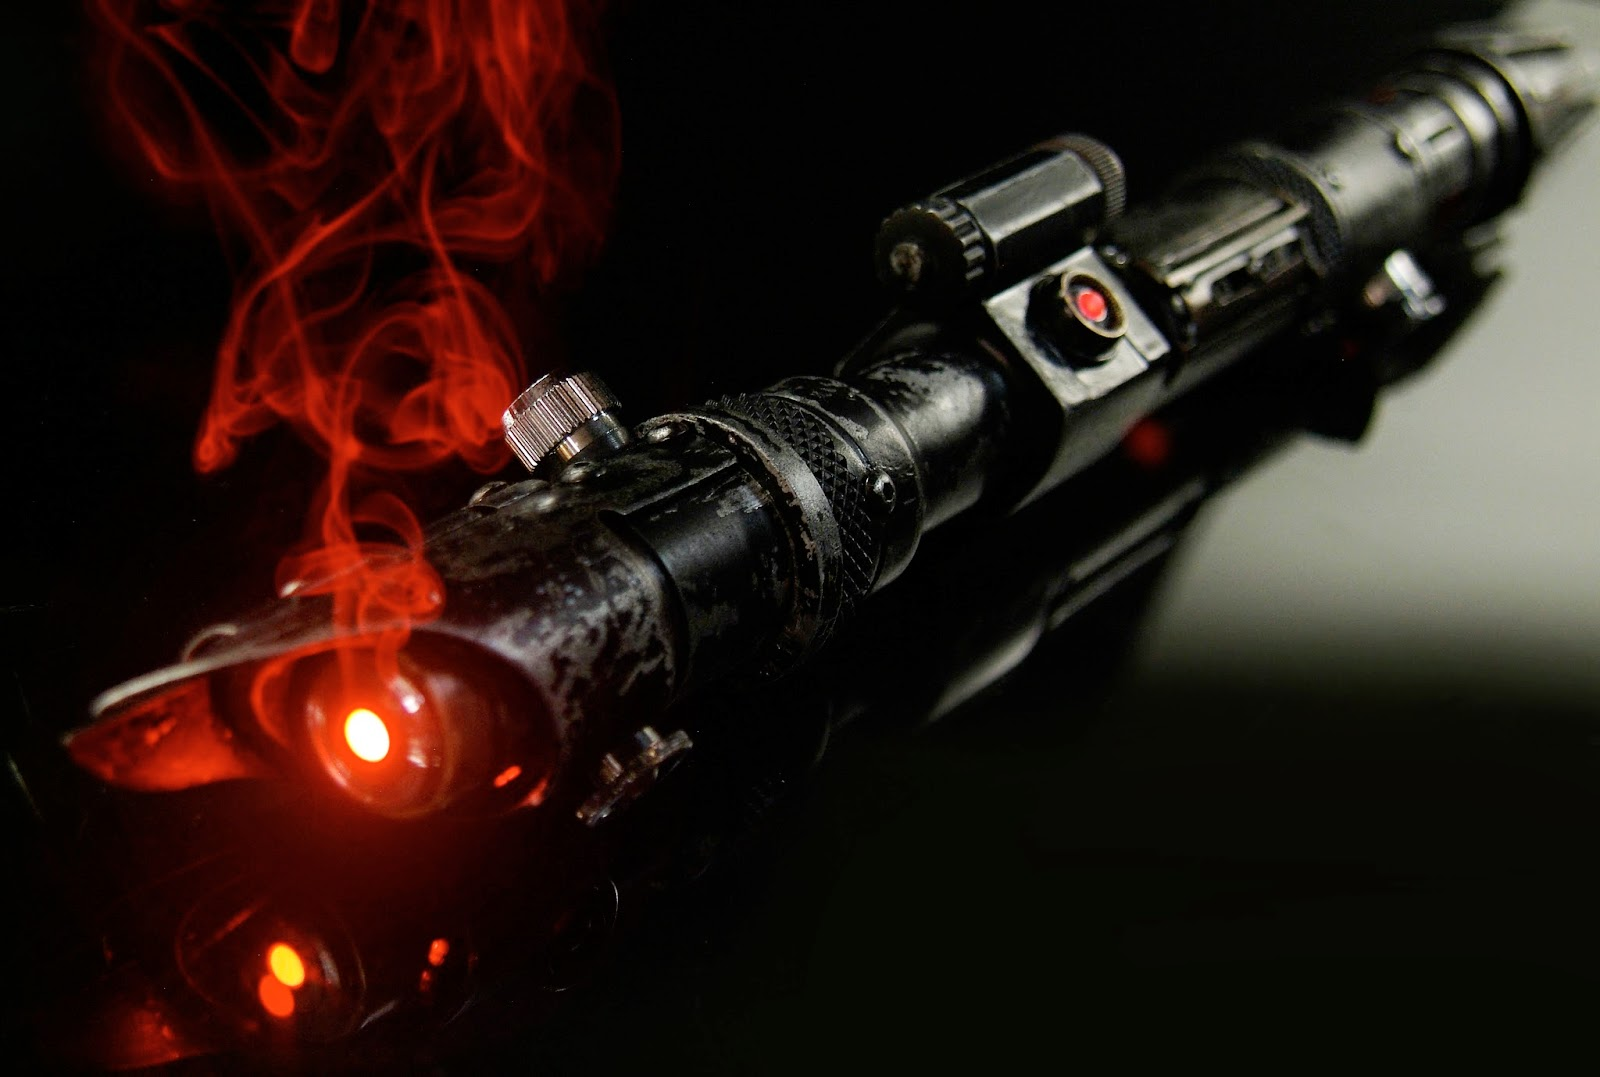 Ro Lightsabers The Sith Warrior Lightsaber